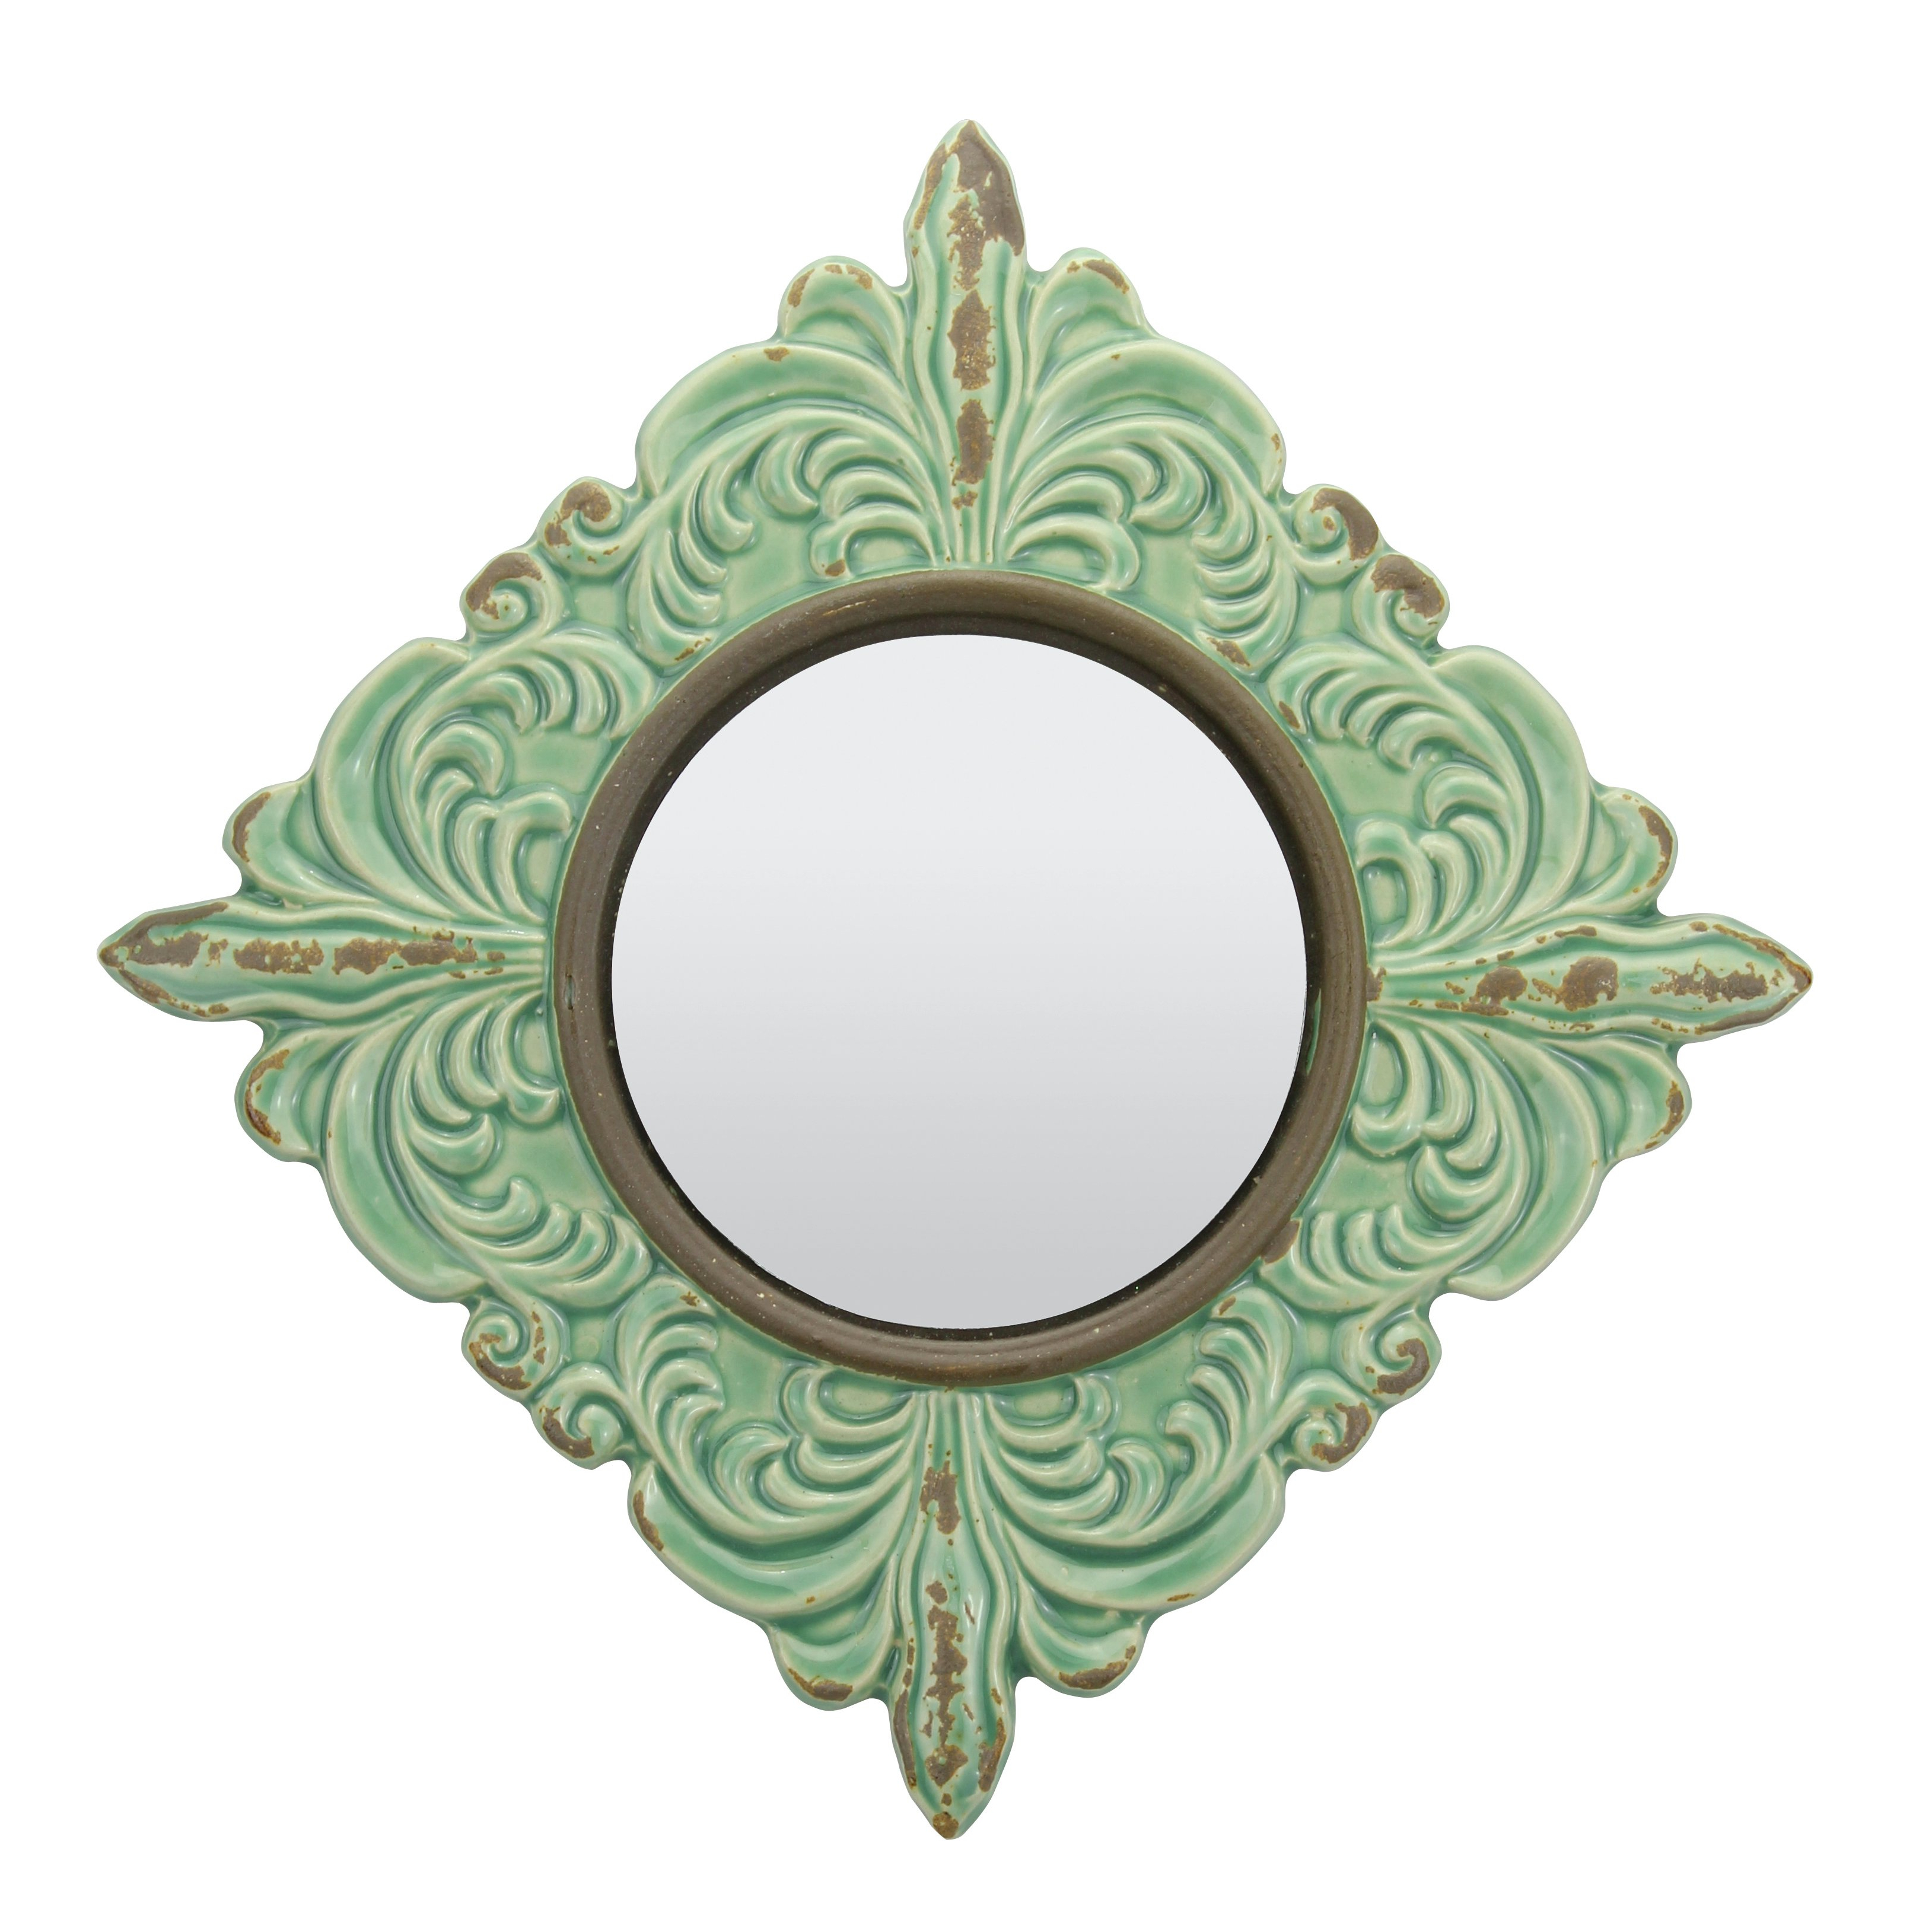 Rashmare Worn Ceramic Traditional Distressed Wall Mirror In Turquoise With Recent Distressed Wall Mirrors (View 17 of 20)